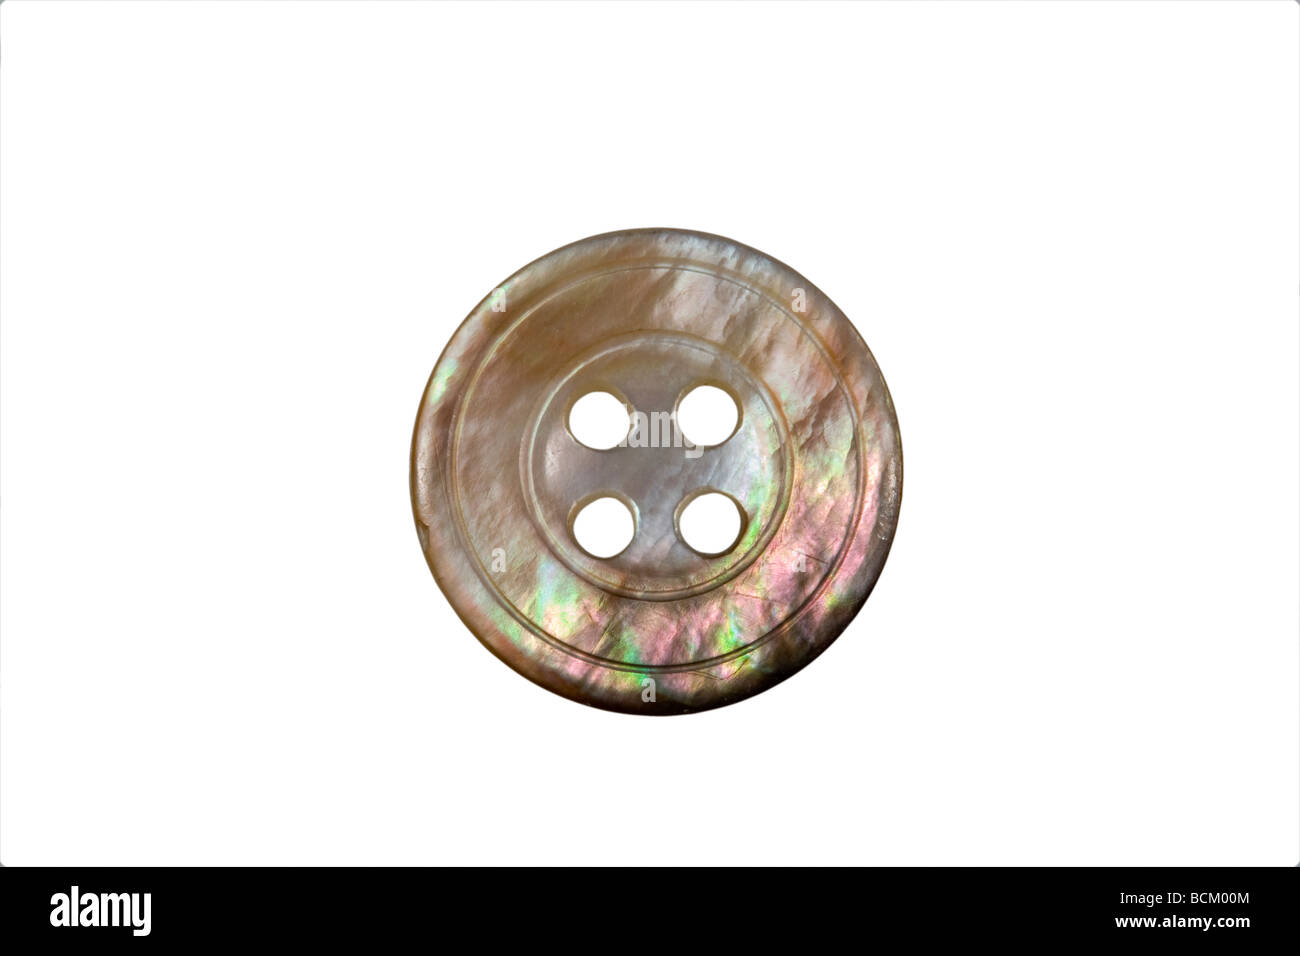 Mother of pearl coloured button - Stock Image